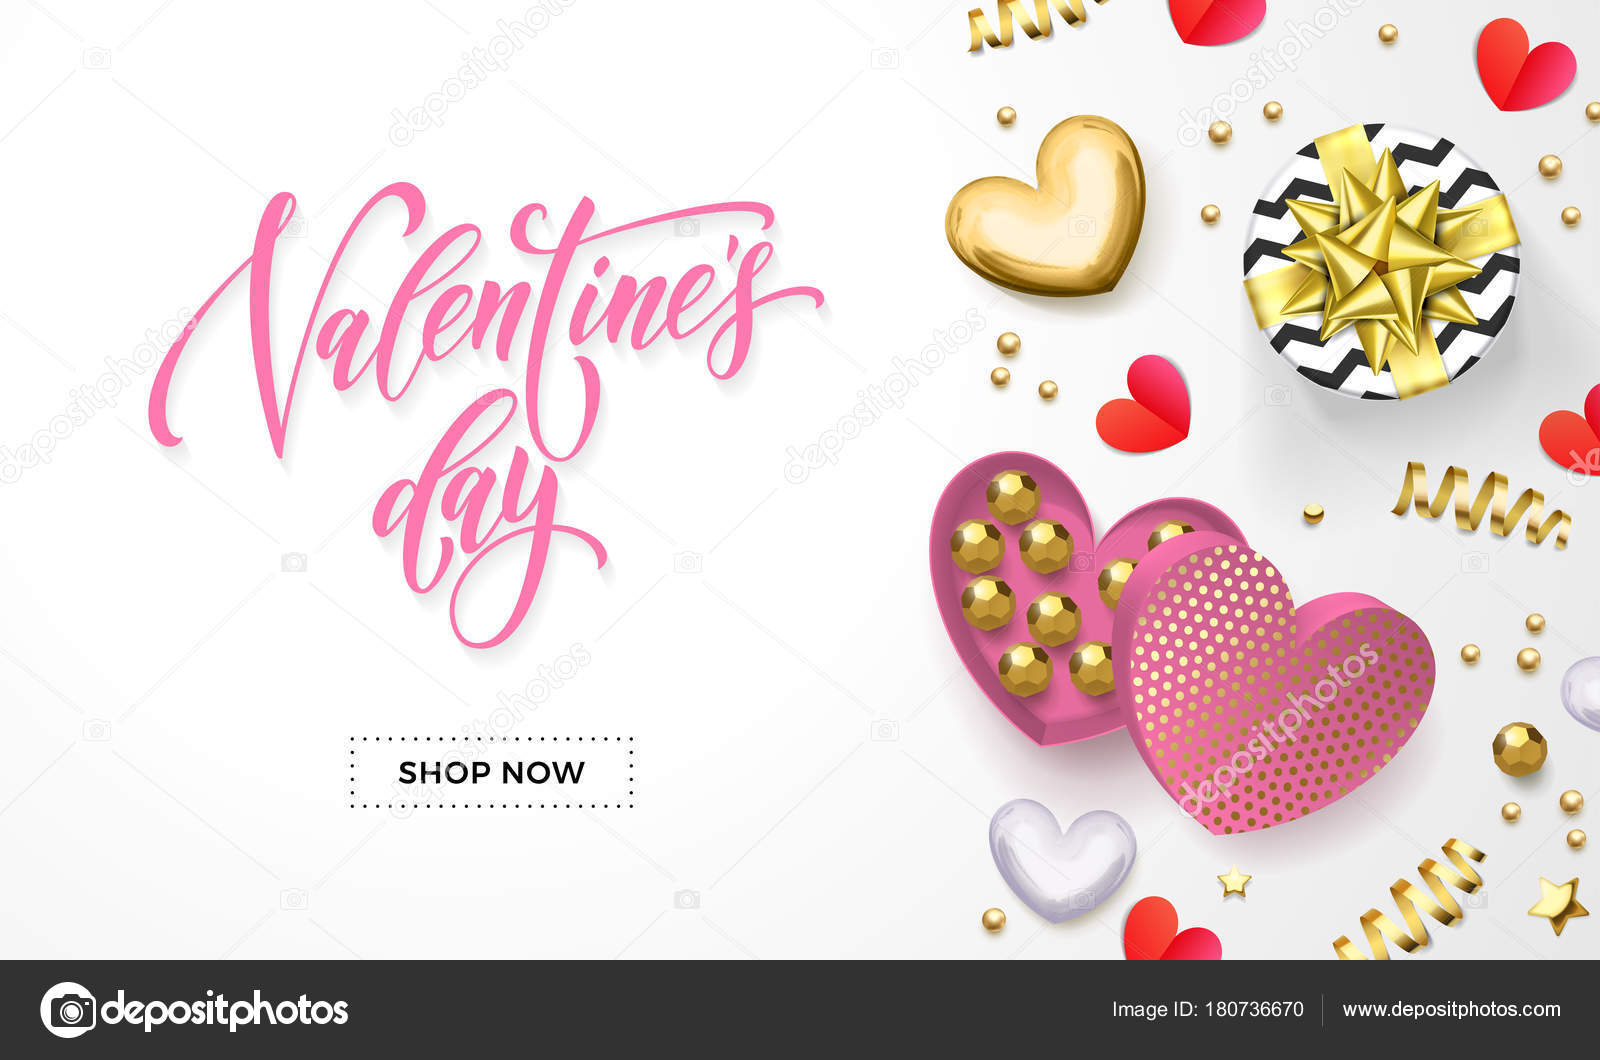 Valentines Day Sale Web Banner For Shop Store Design Of Heart Gift